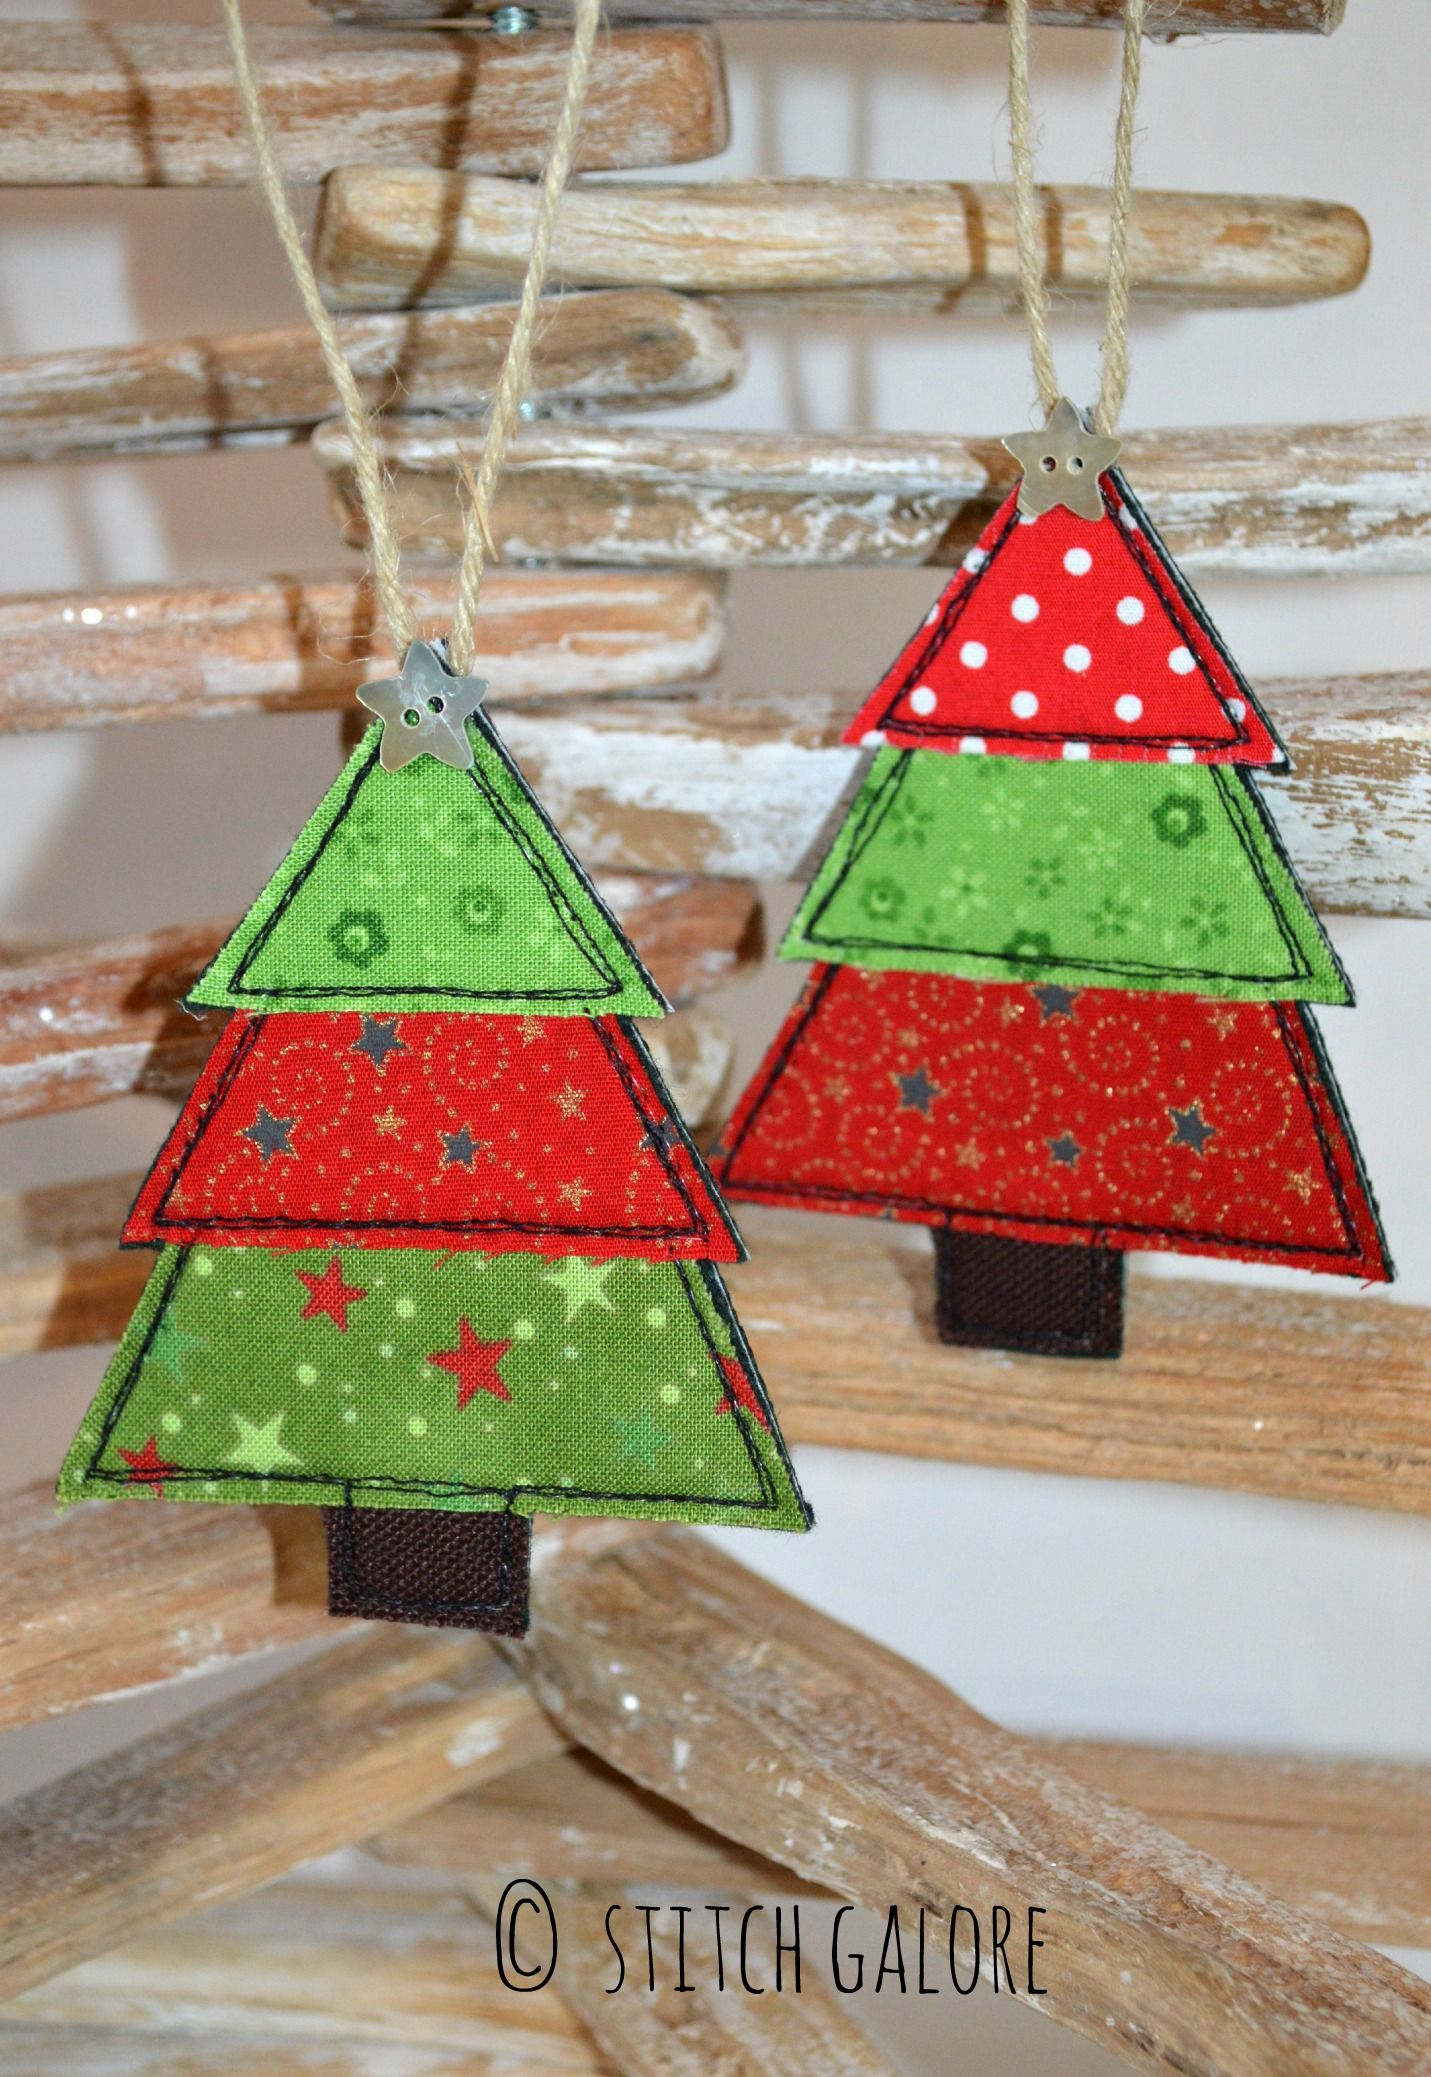 Handmade Christmas tree Christmas decorations. Decorated with embroidery and applique by Stitch Galore. www.stitchgalore.com